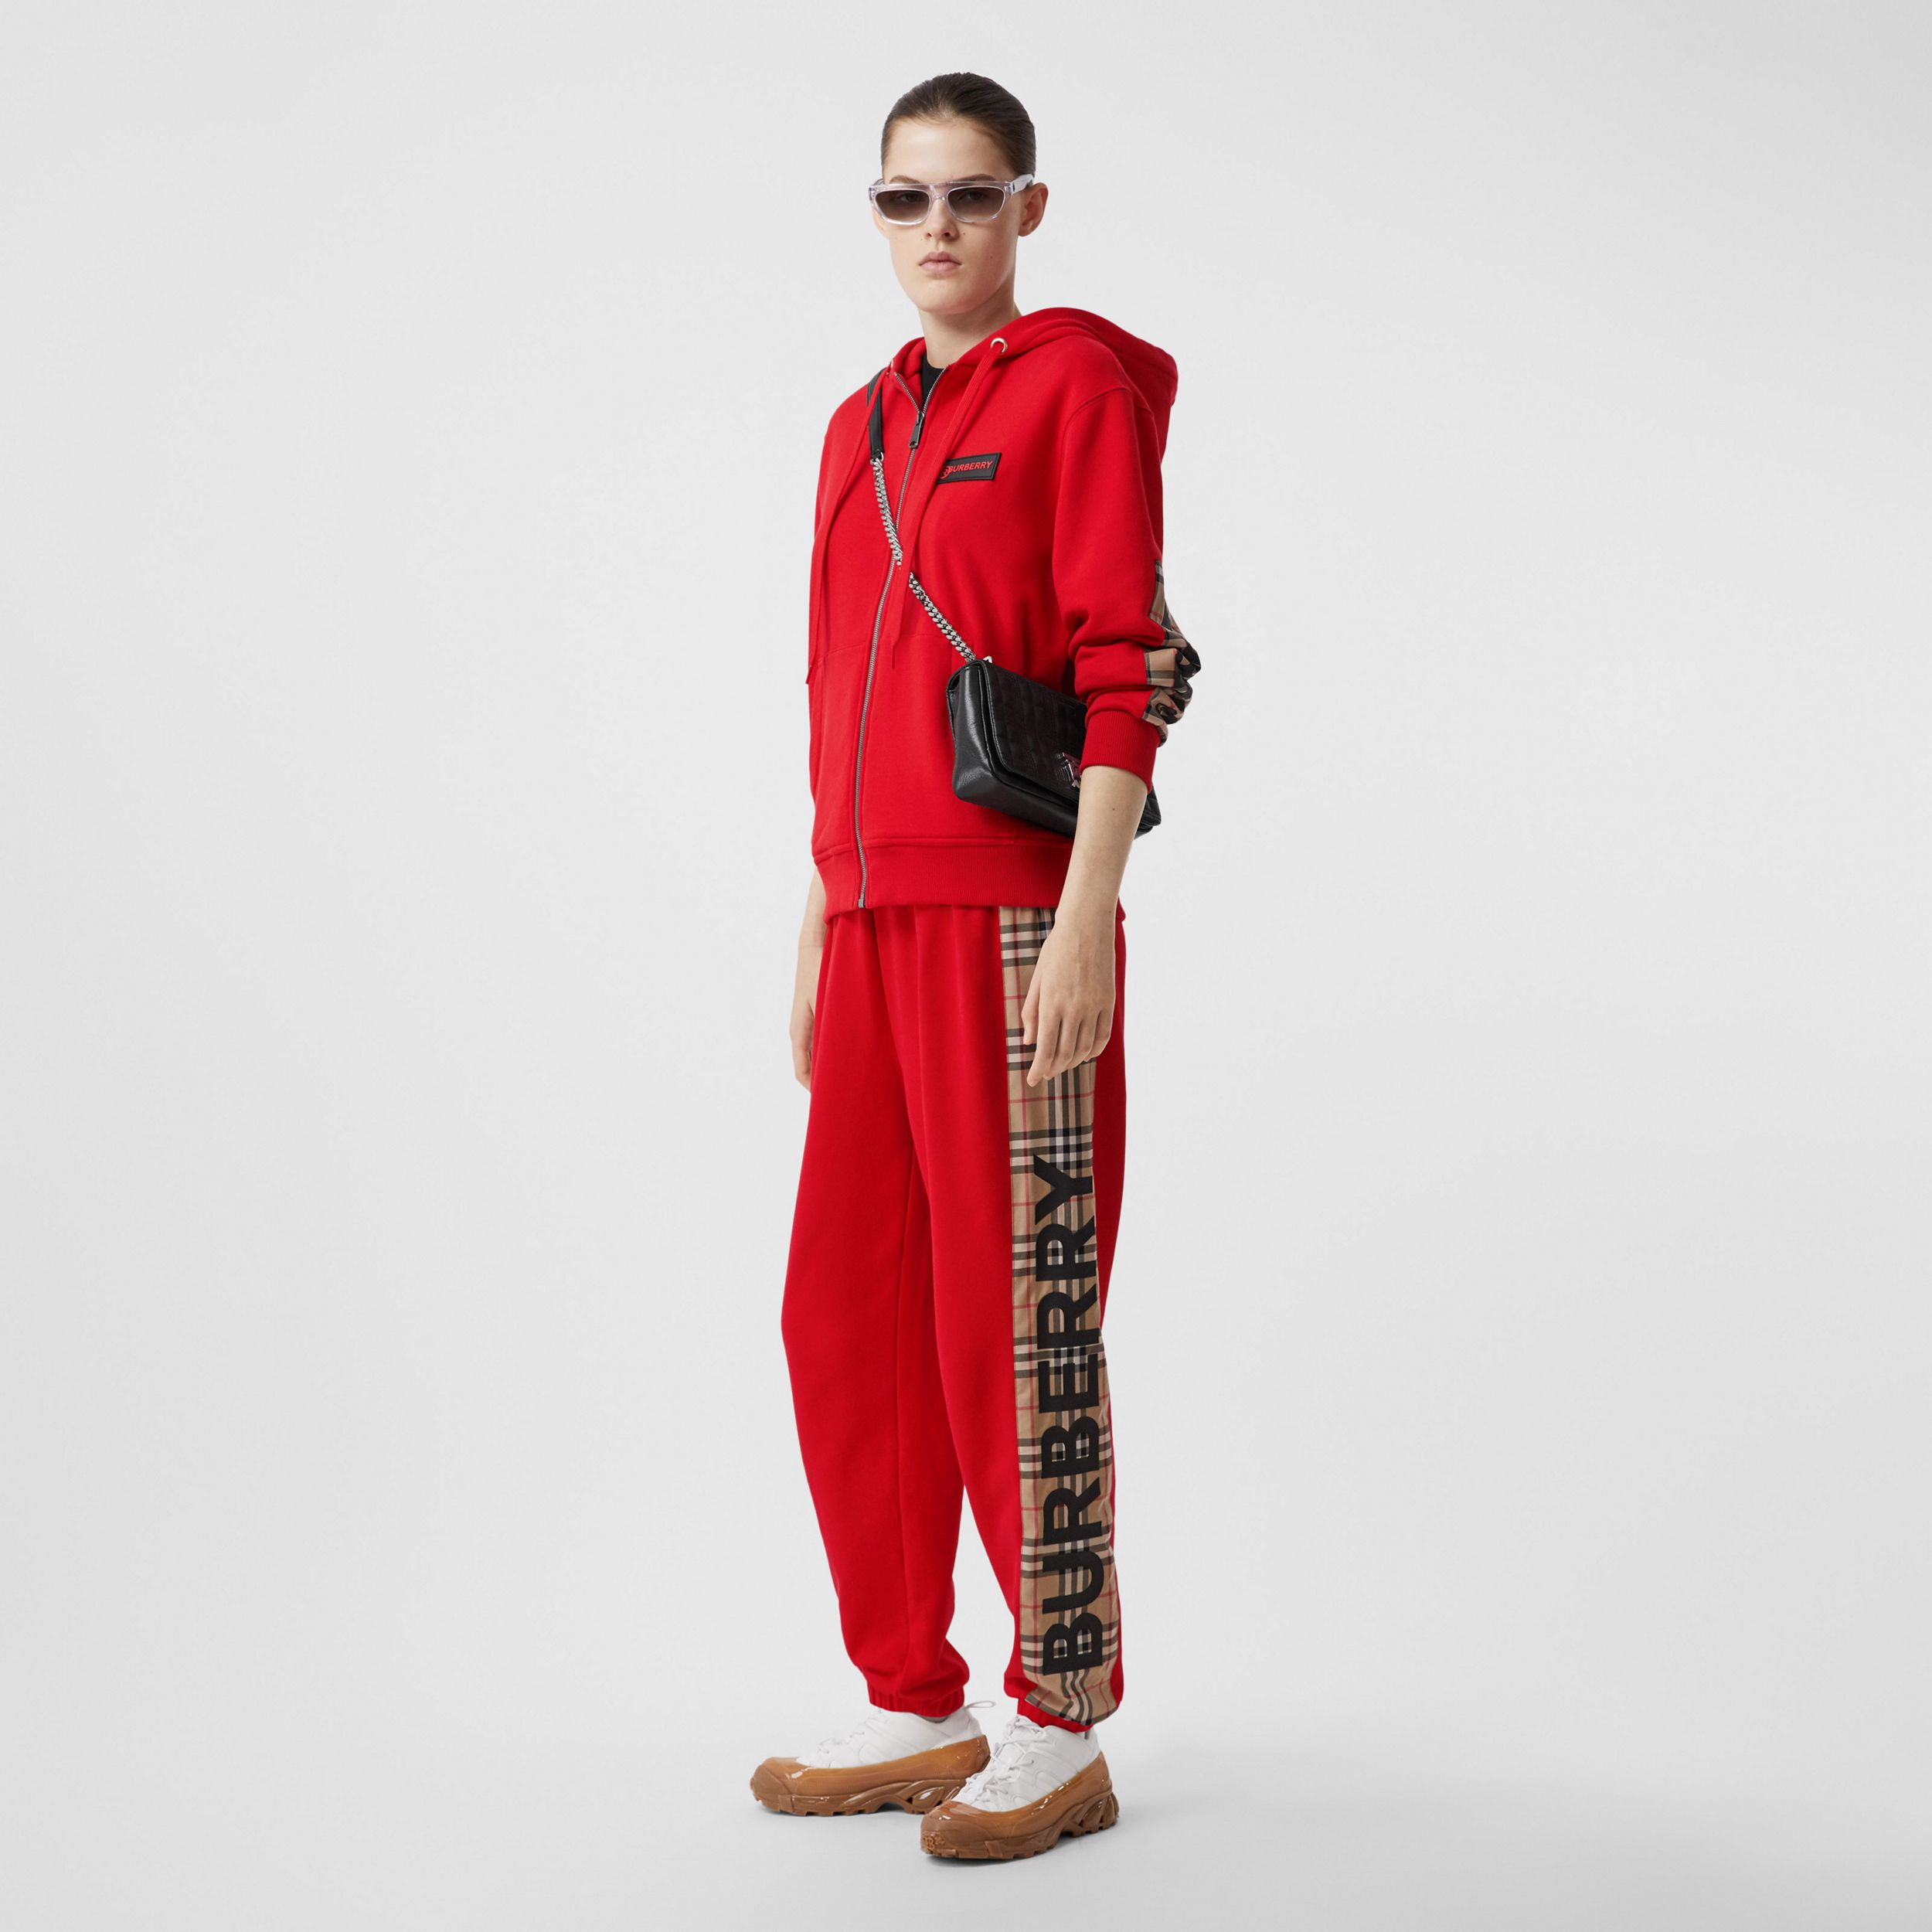 Vintage Check Panel Cotton Jogging Pants in Bright Red - Women | Burberry Australia - 1